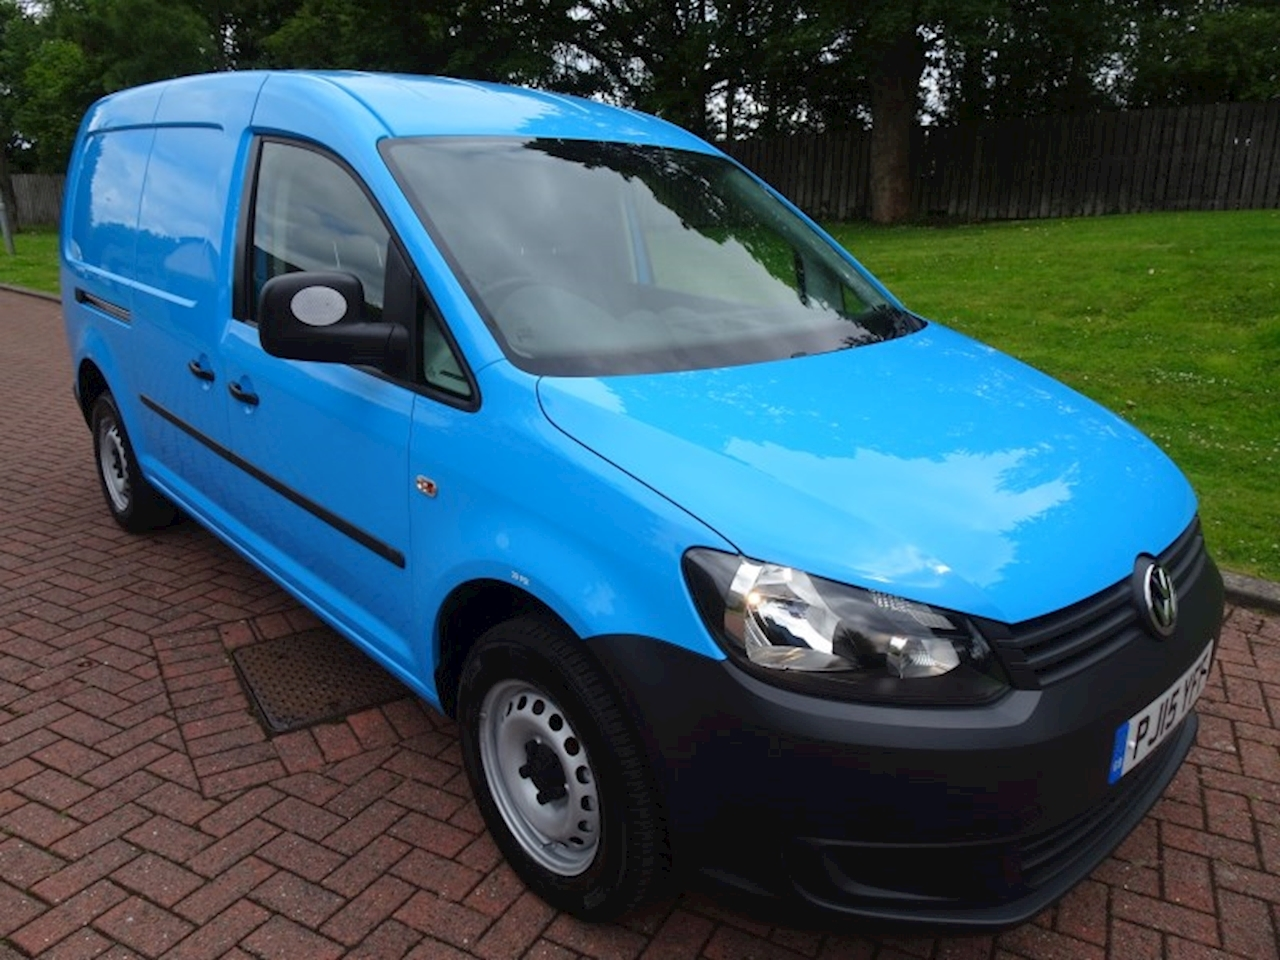 Volkswagen Caddy C20 Tdi Startline Panel Van 1.6 Manual Diesel